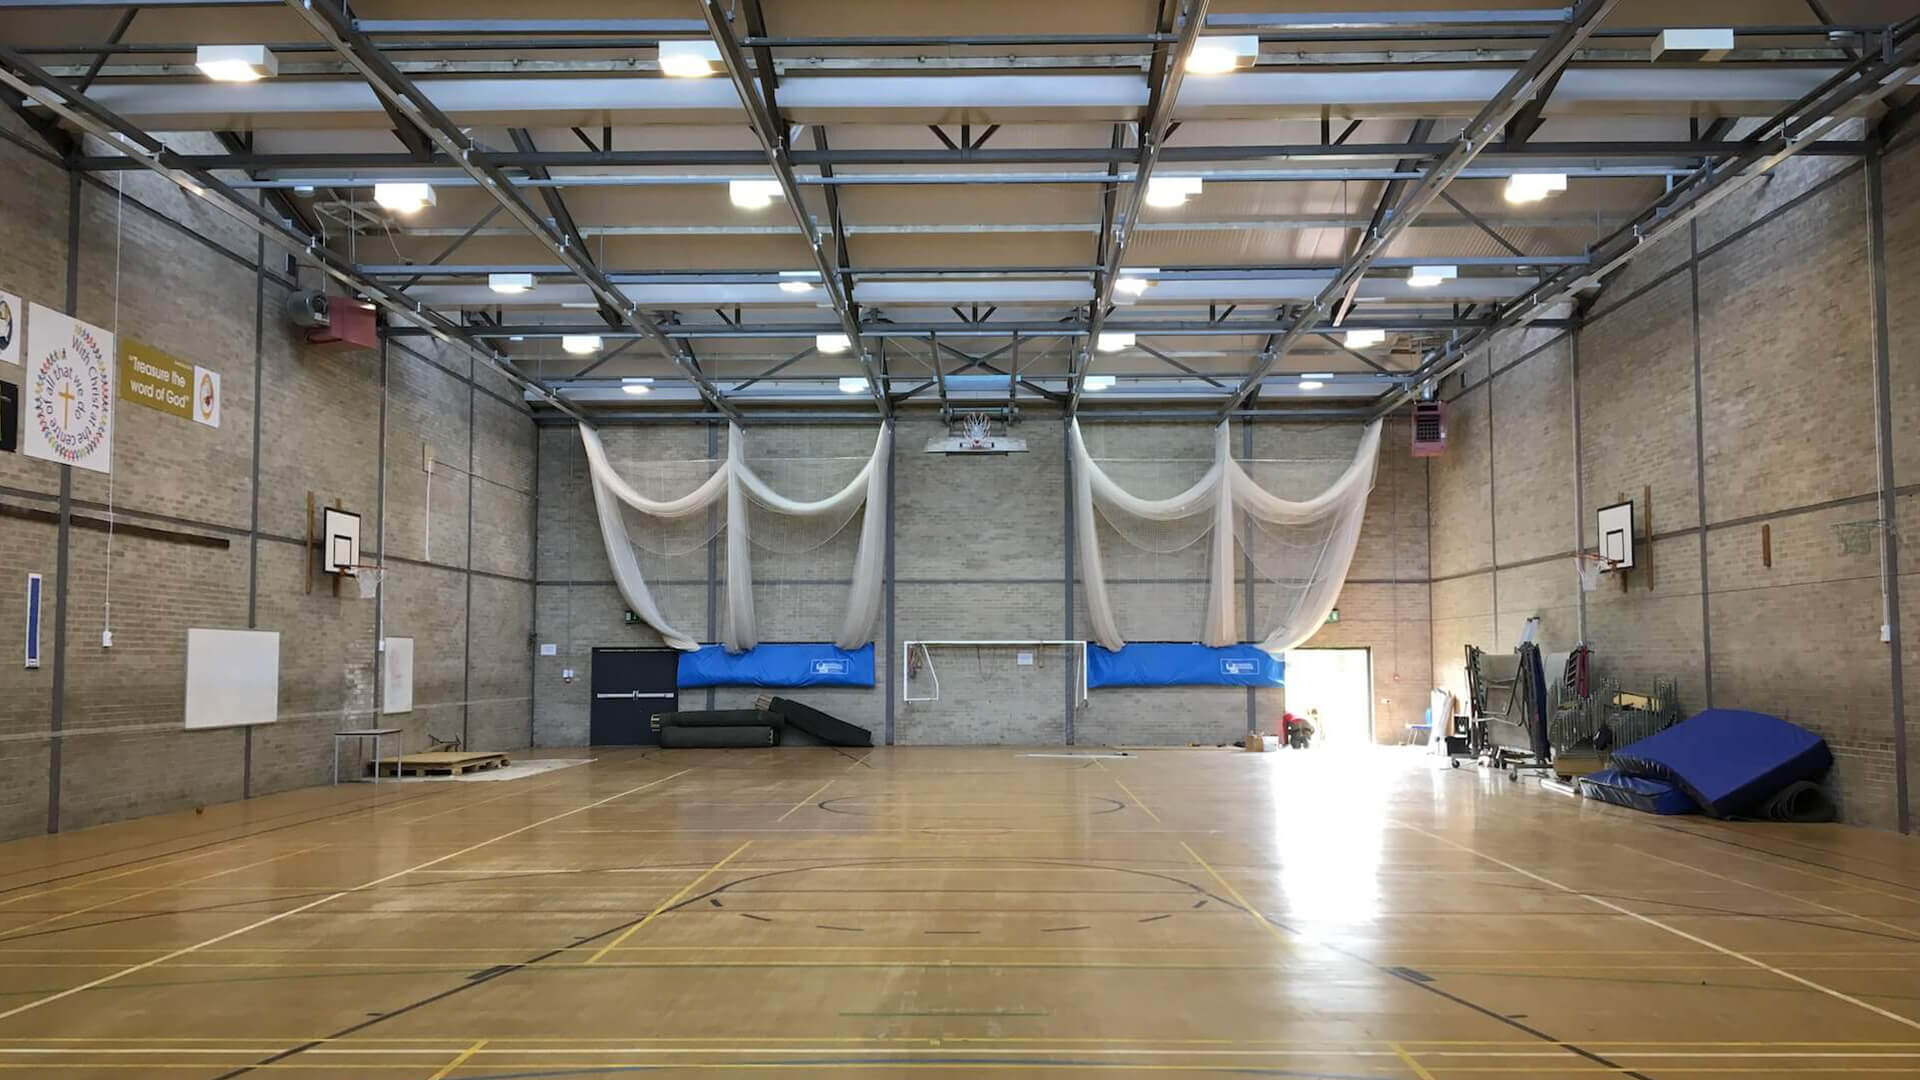 St Mary's Sports Hall Menston West Yorkshire